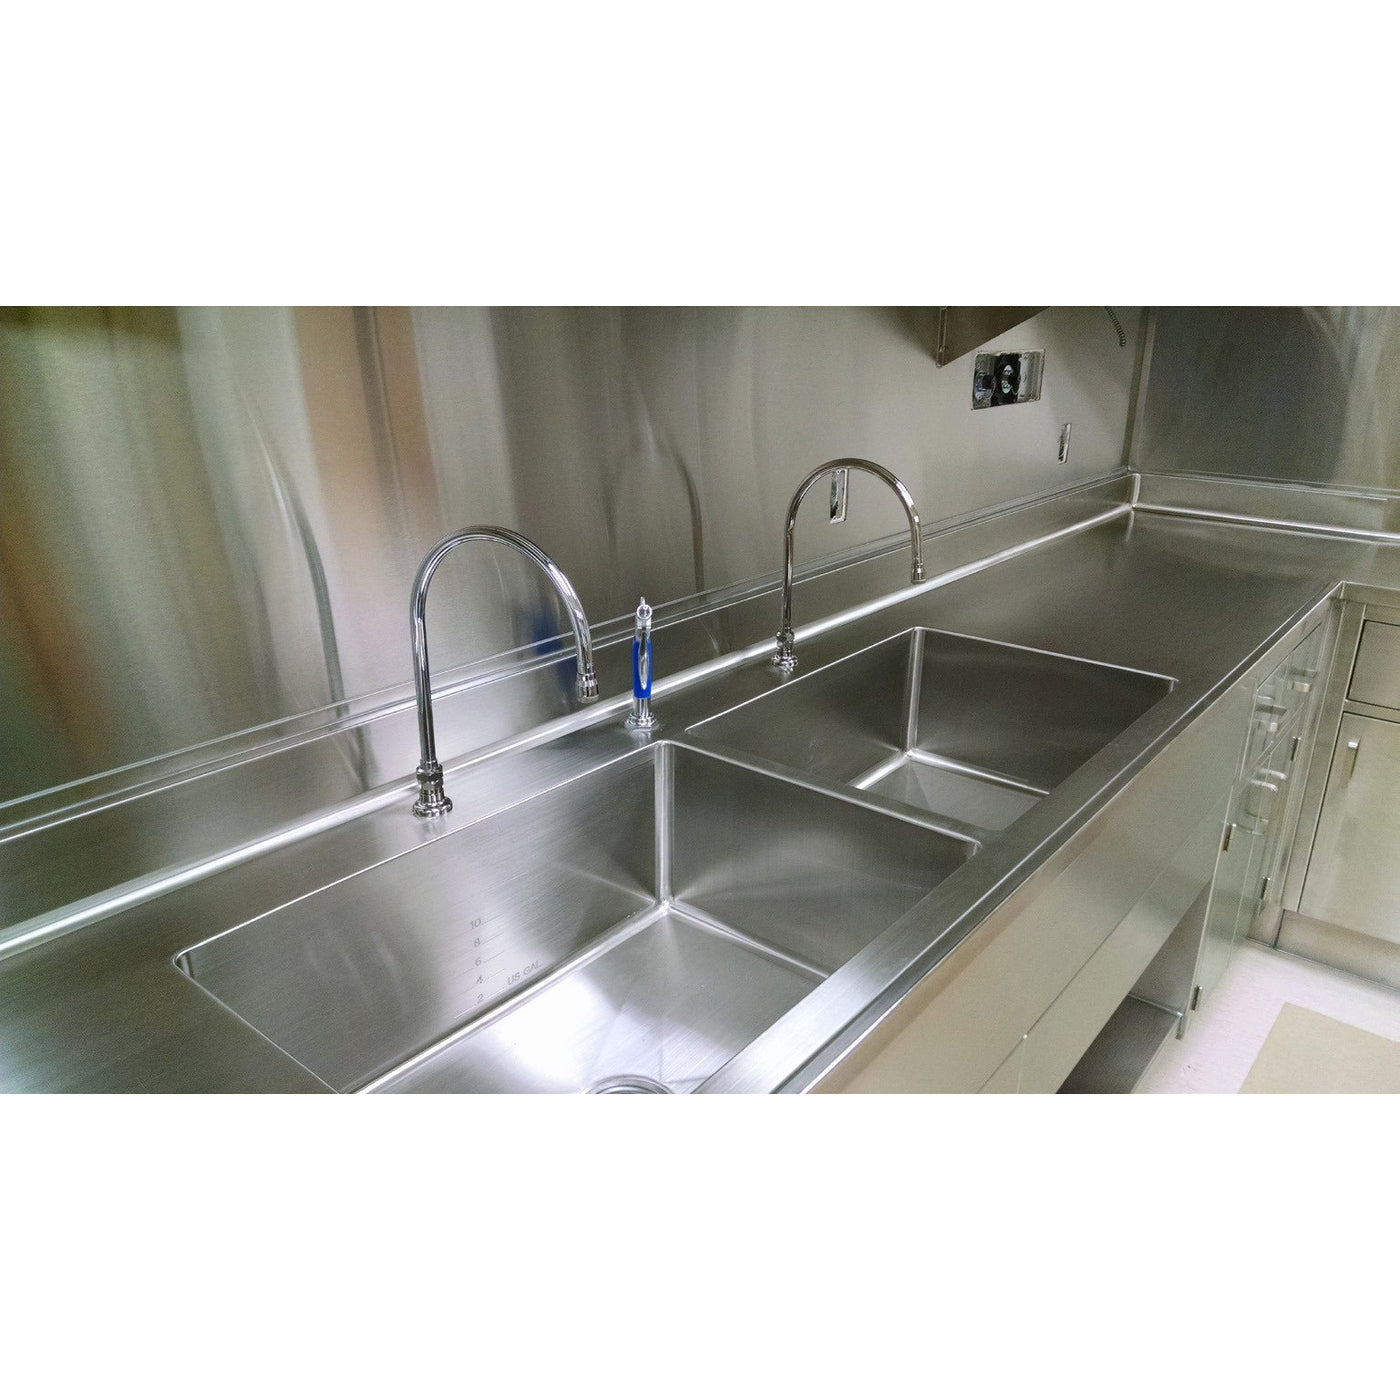 Custom Decontamination Sink-Sink Station-Mortech Manufacturing Company Inc. Quality Stainless Steel Autopsy, Morgue, Funeral Home, Necropsy, Veterinary / Anatomy, Dissection Equipment and Accessories